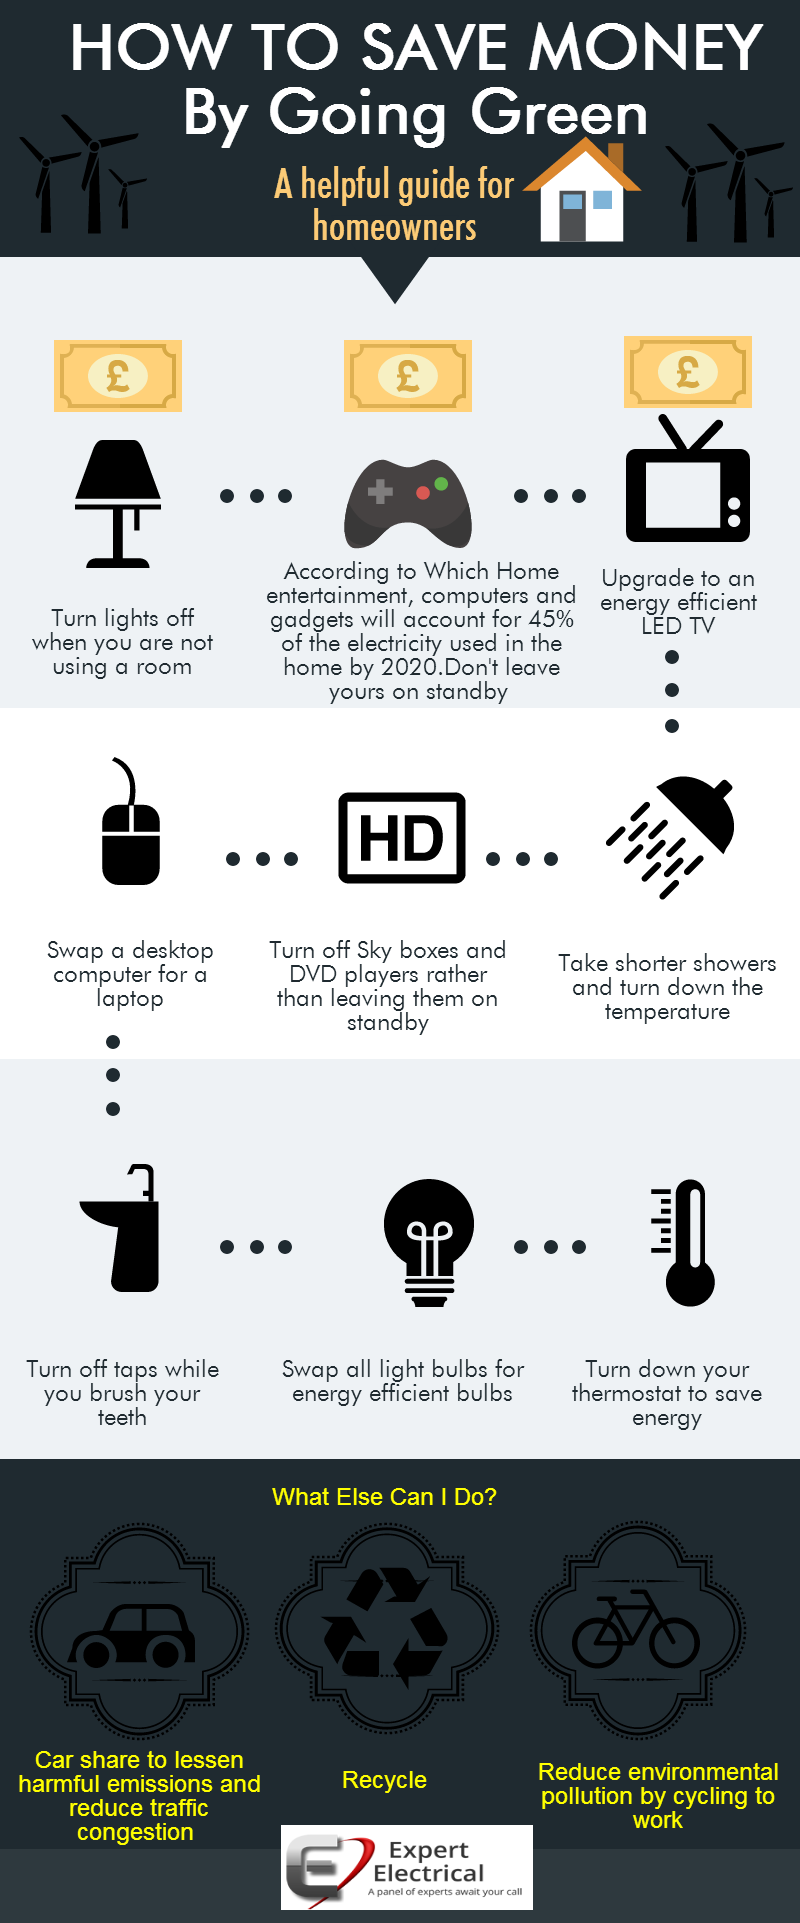 Expert Electrical Infographic to go with From Hospitals to Homes...